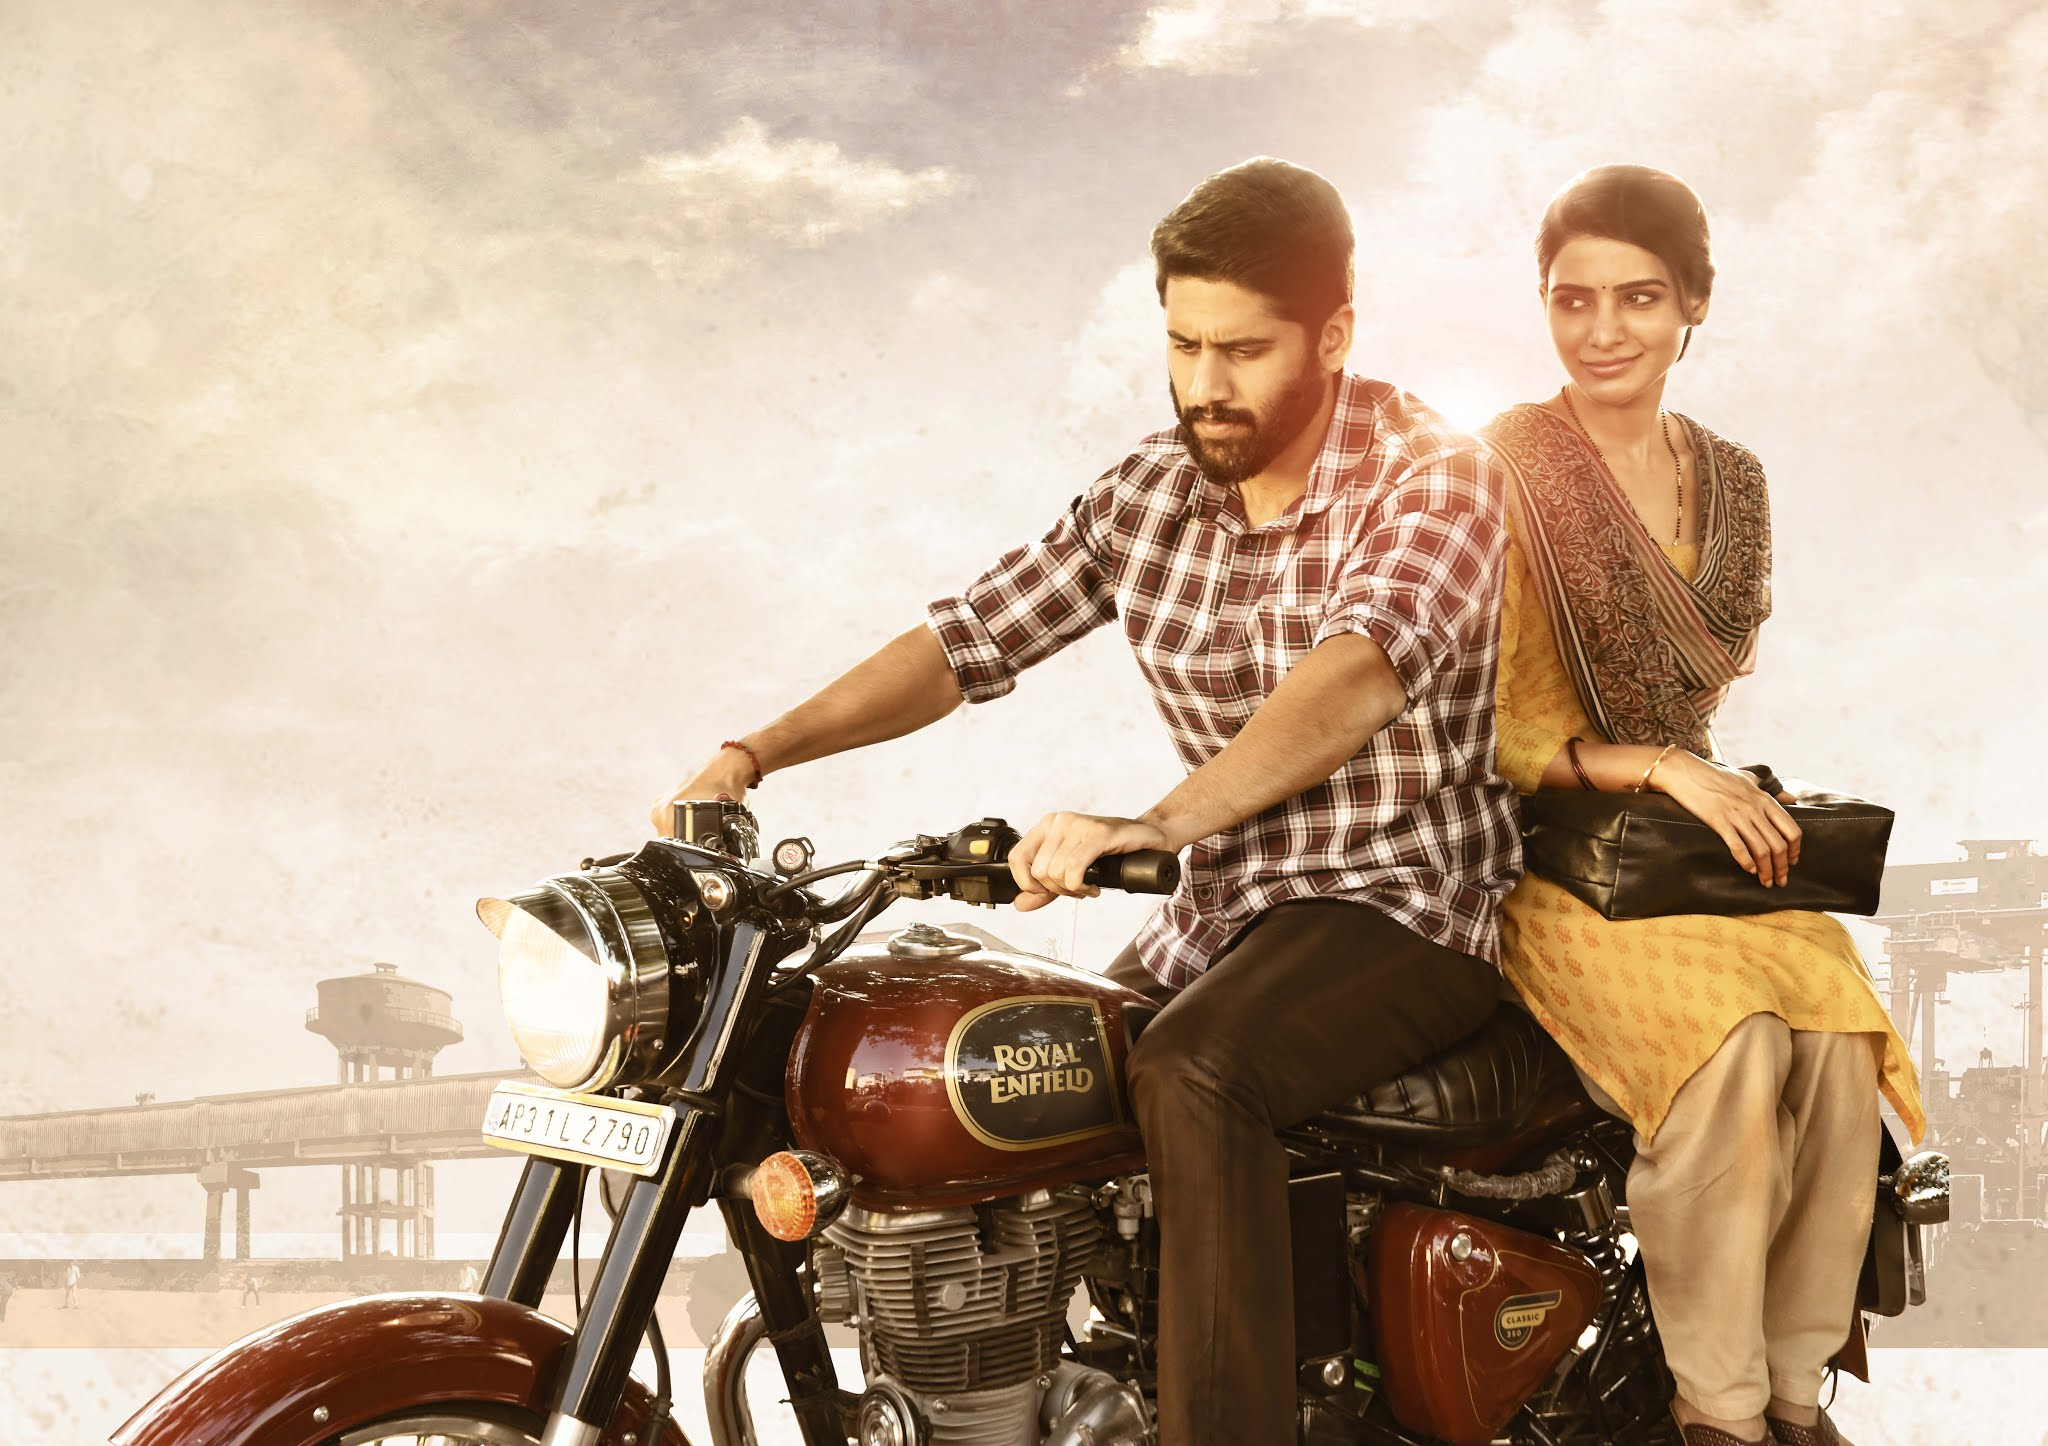 Majili Movie Photos HD Naga Chaitanya Samantha 57e4aad